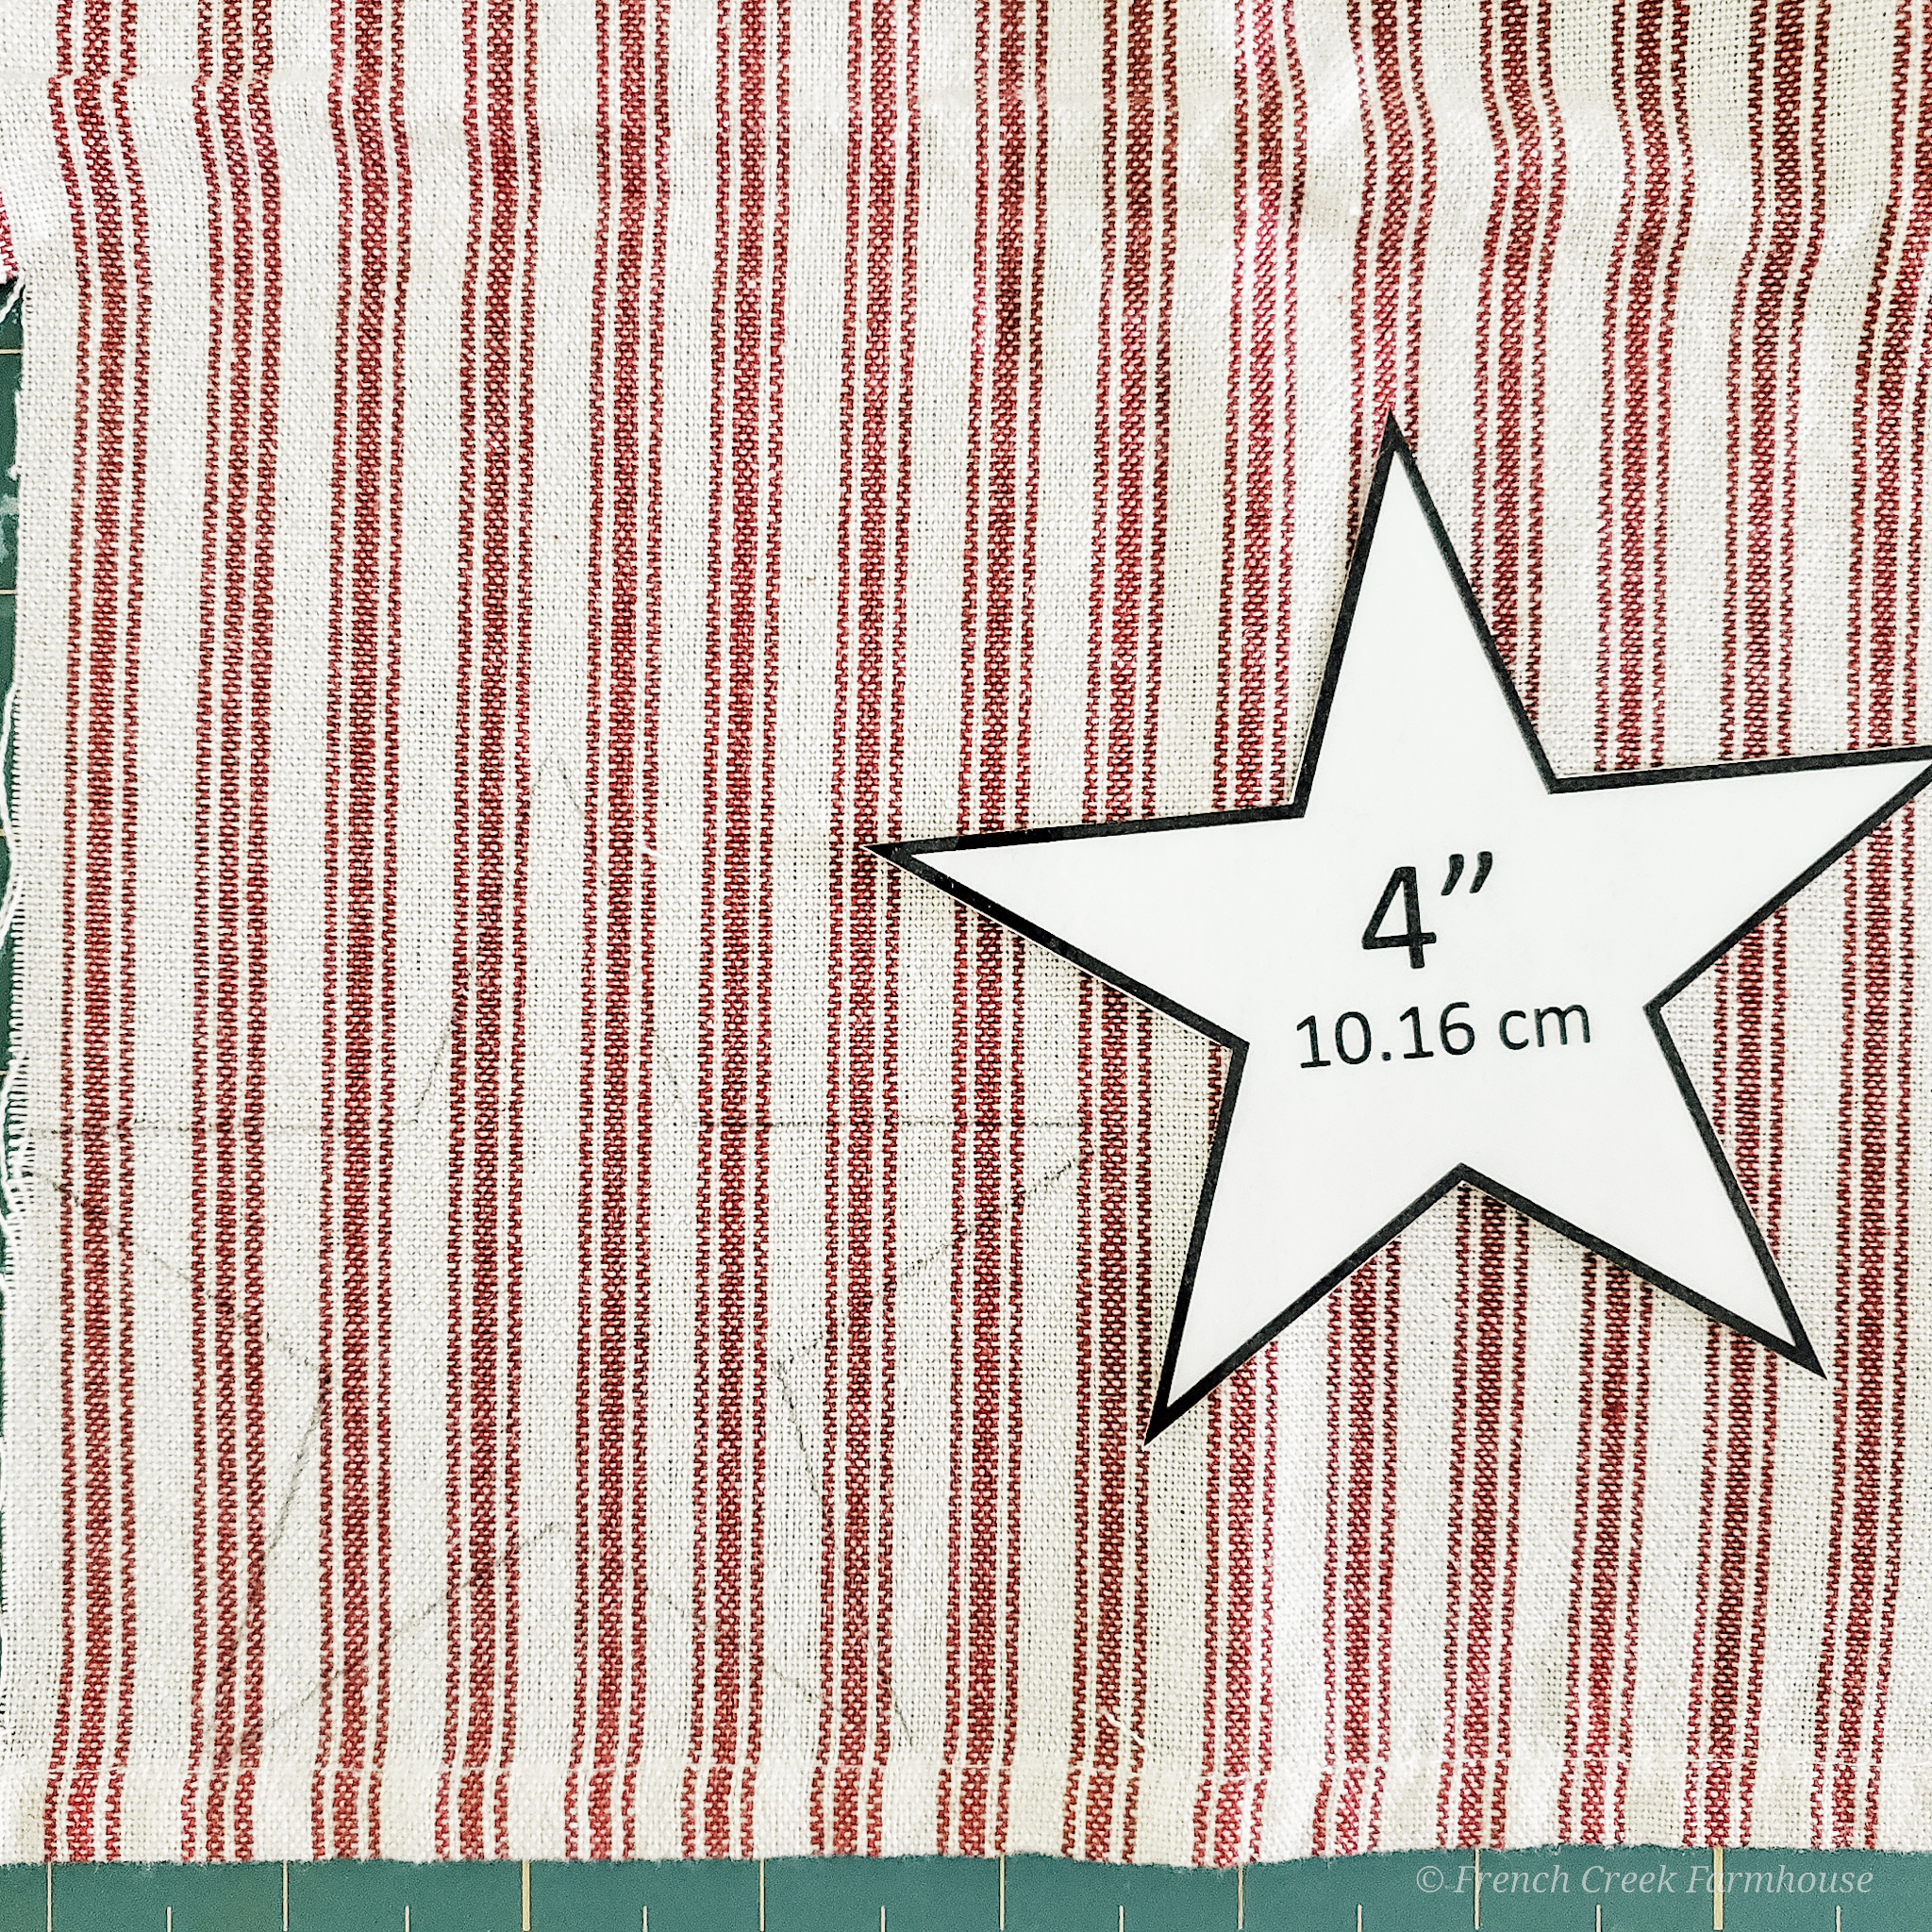 The free printable pattern includes templates for four sizes of stars